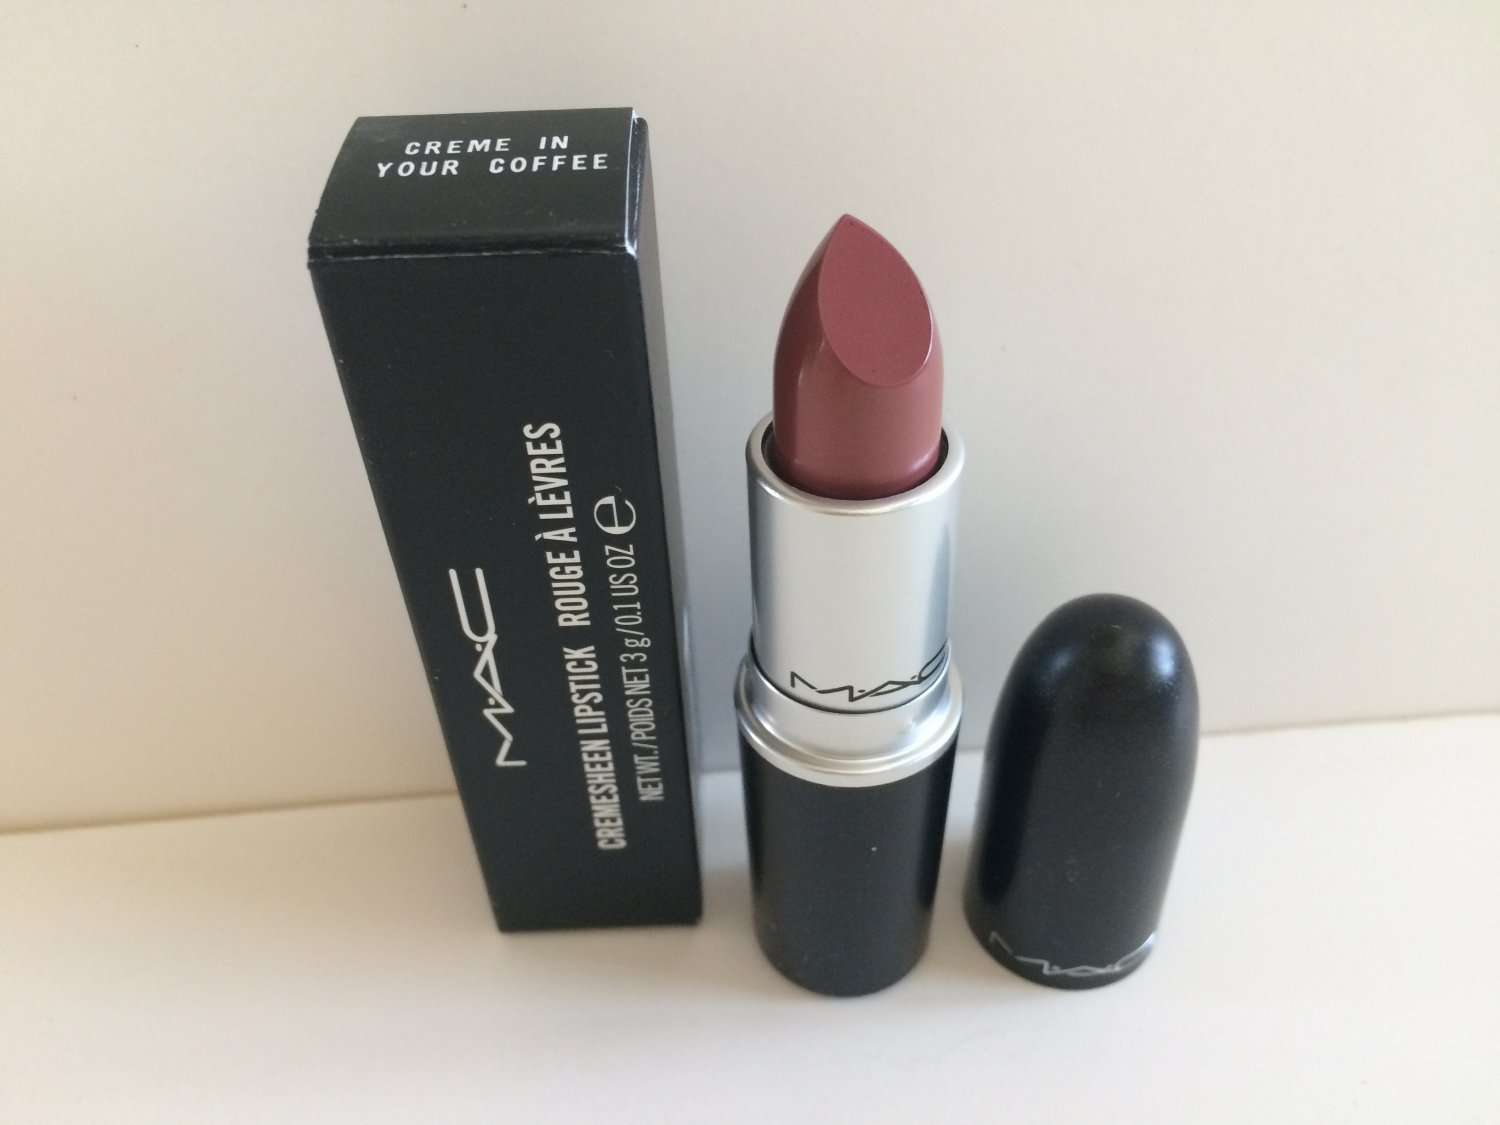 MAC Cremesheen Lipstick - Crème in Your Coffee